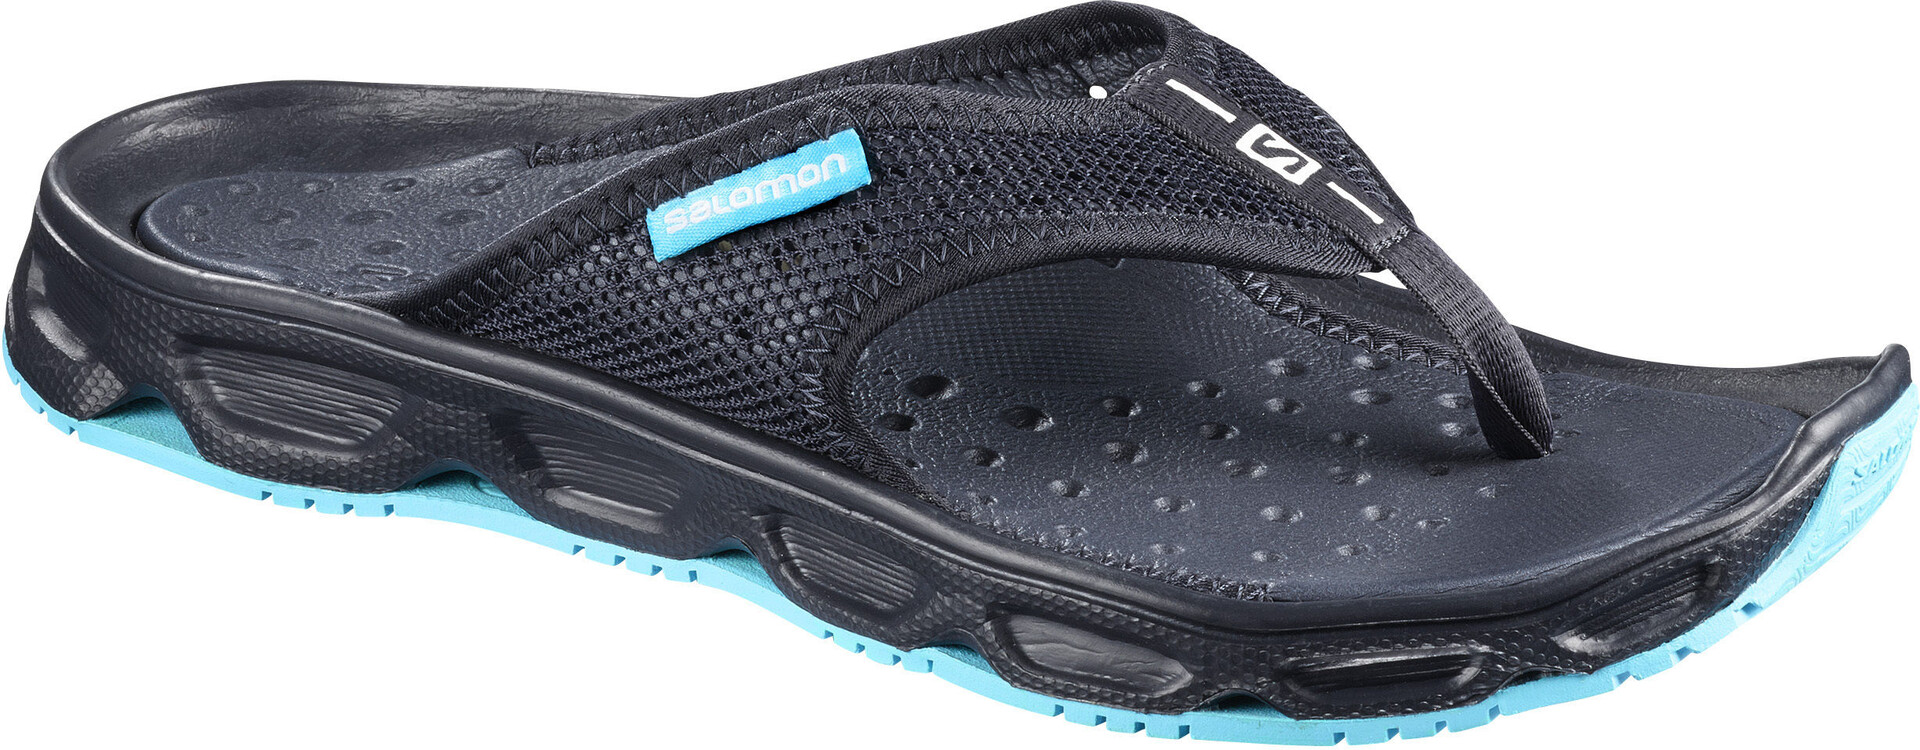 Salomon RX Break Tøfler Herre night skynight skyblue curacao